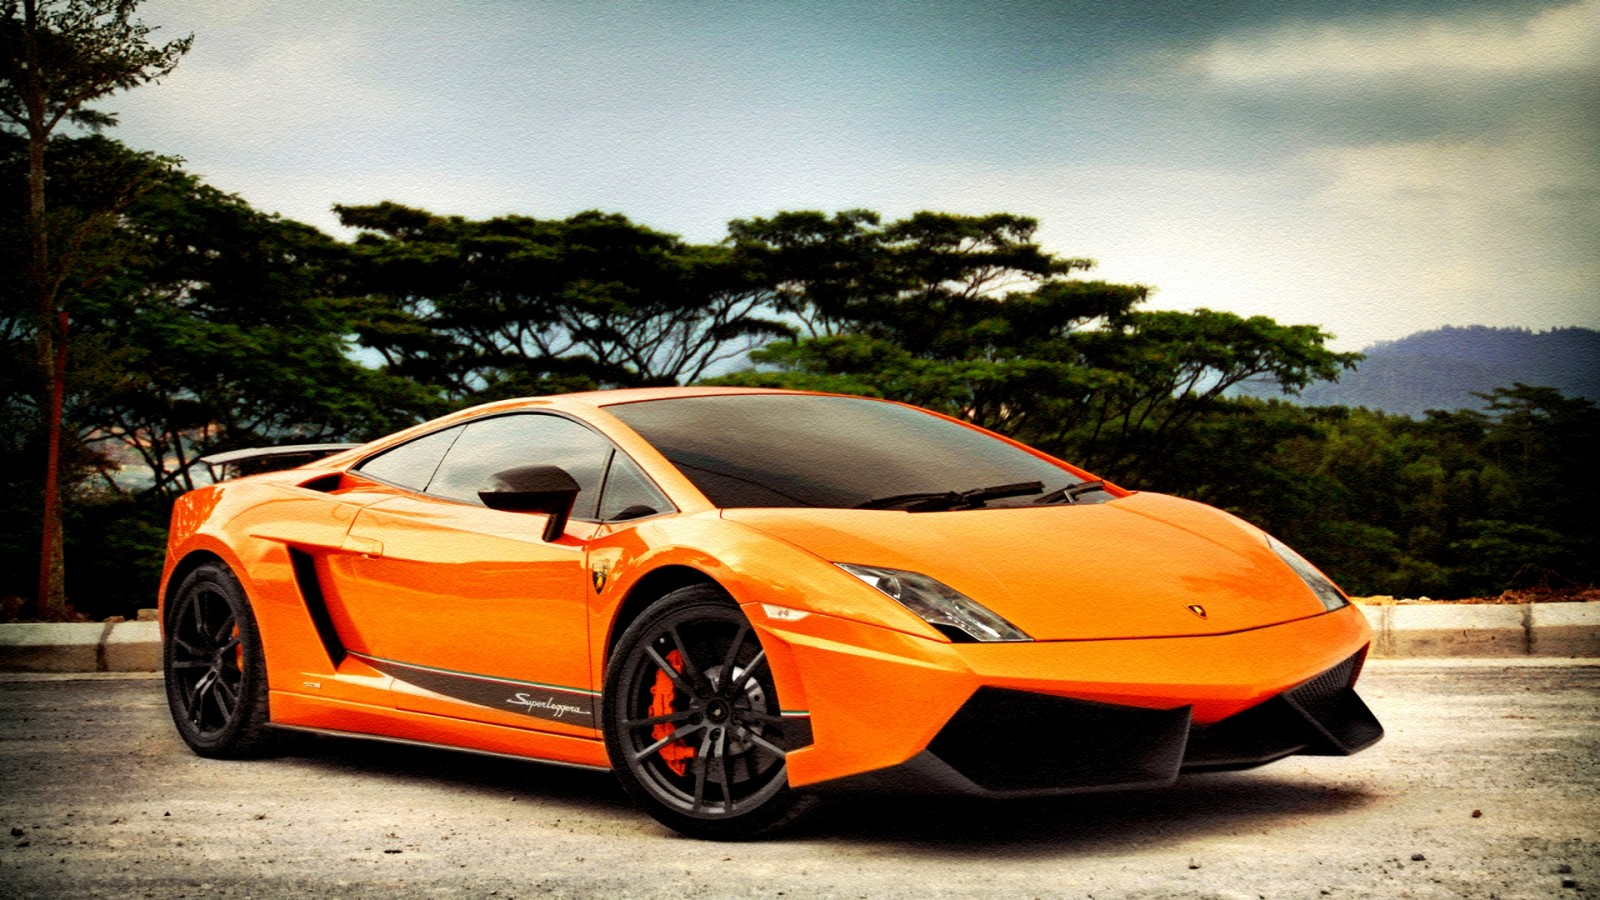 lamborghini gallardo superleggera wallpapers hd pictures photos anh